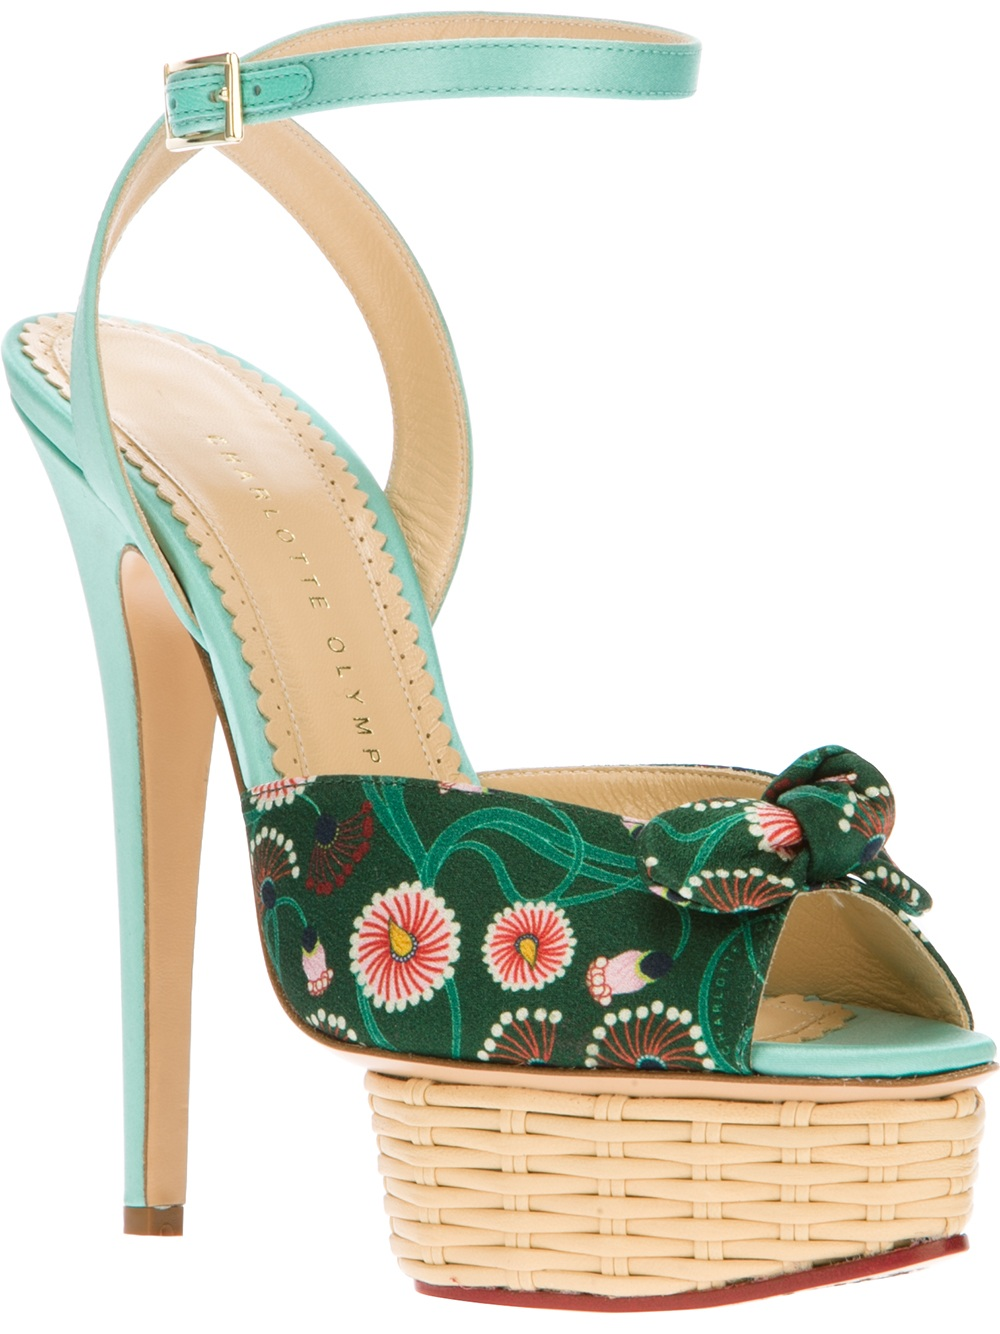 Lyst Charlotte Olympia Serena Sandal In Green